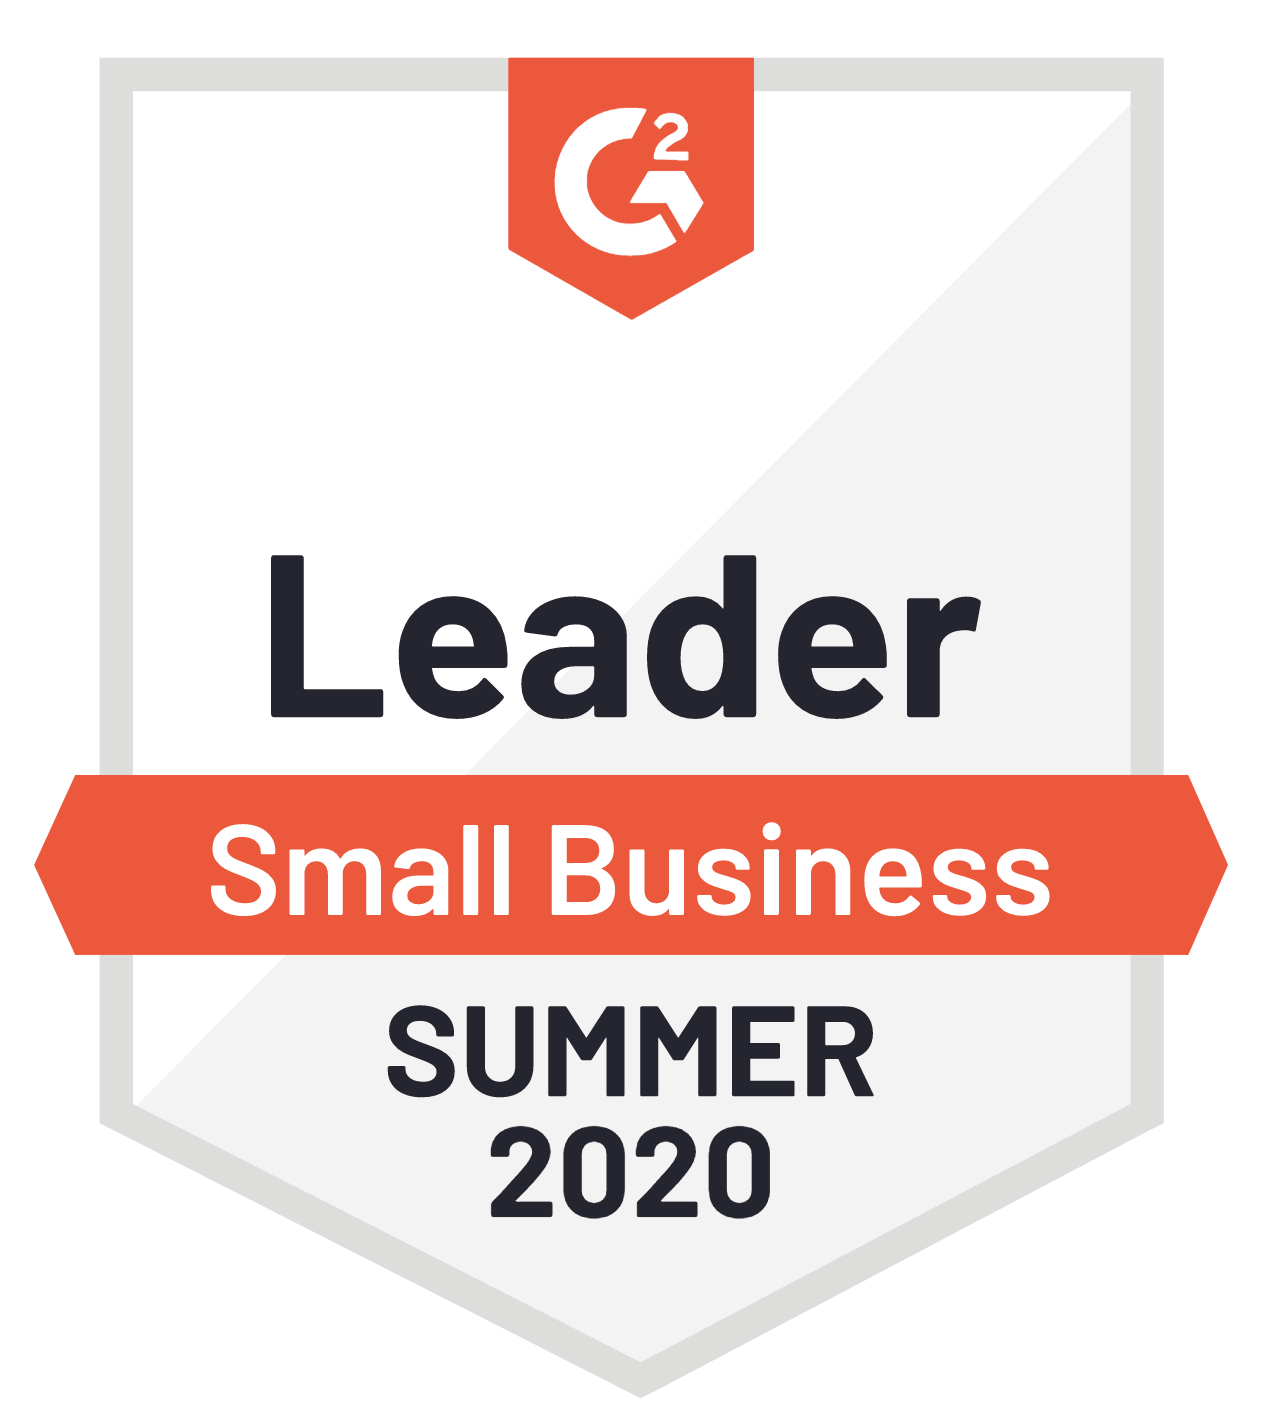 Small Business Leader